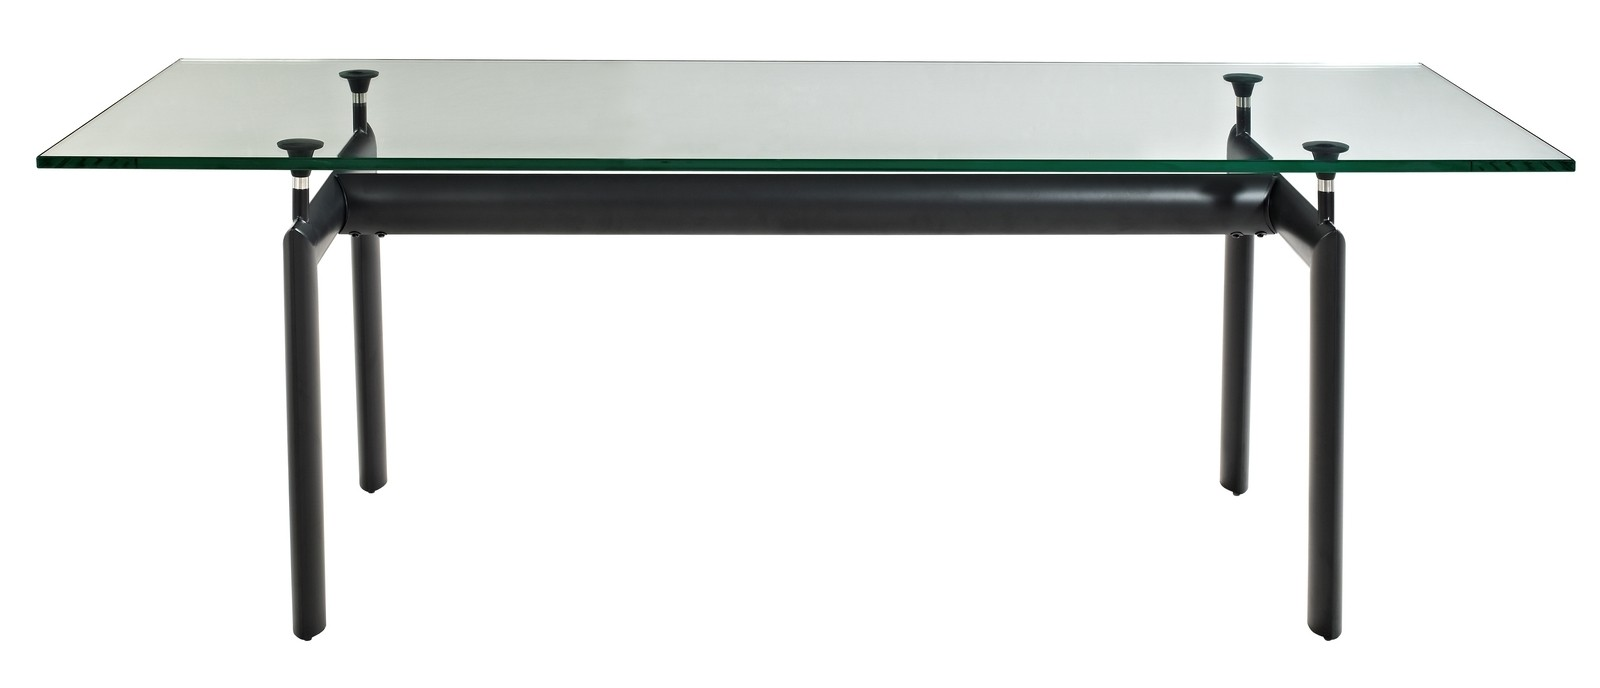 Le corbusier lc6 dining table from renegade eei 521 - Table le corbusier lc6 ...